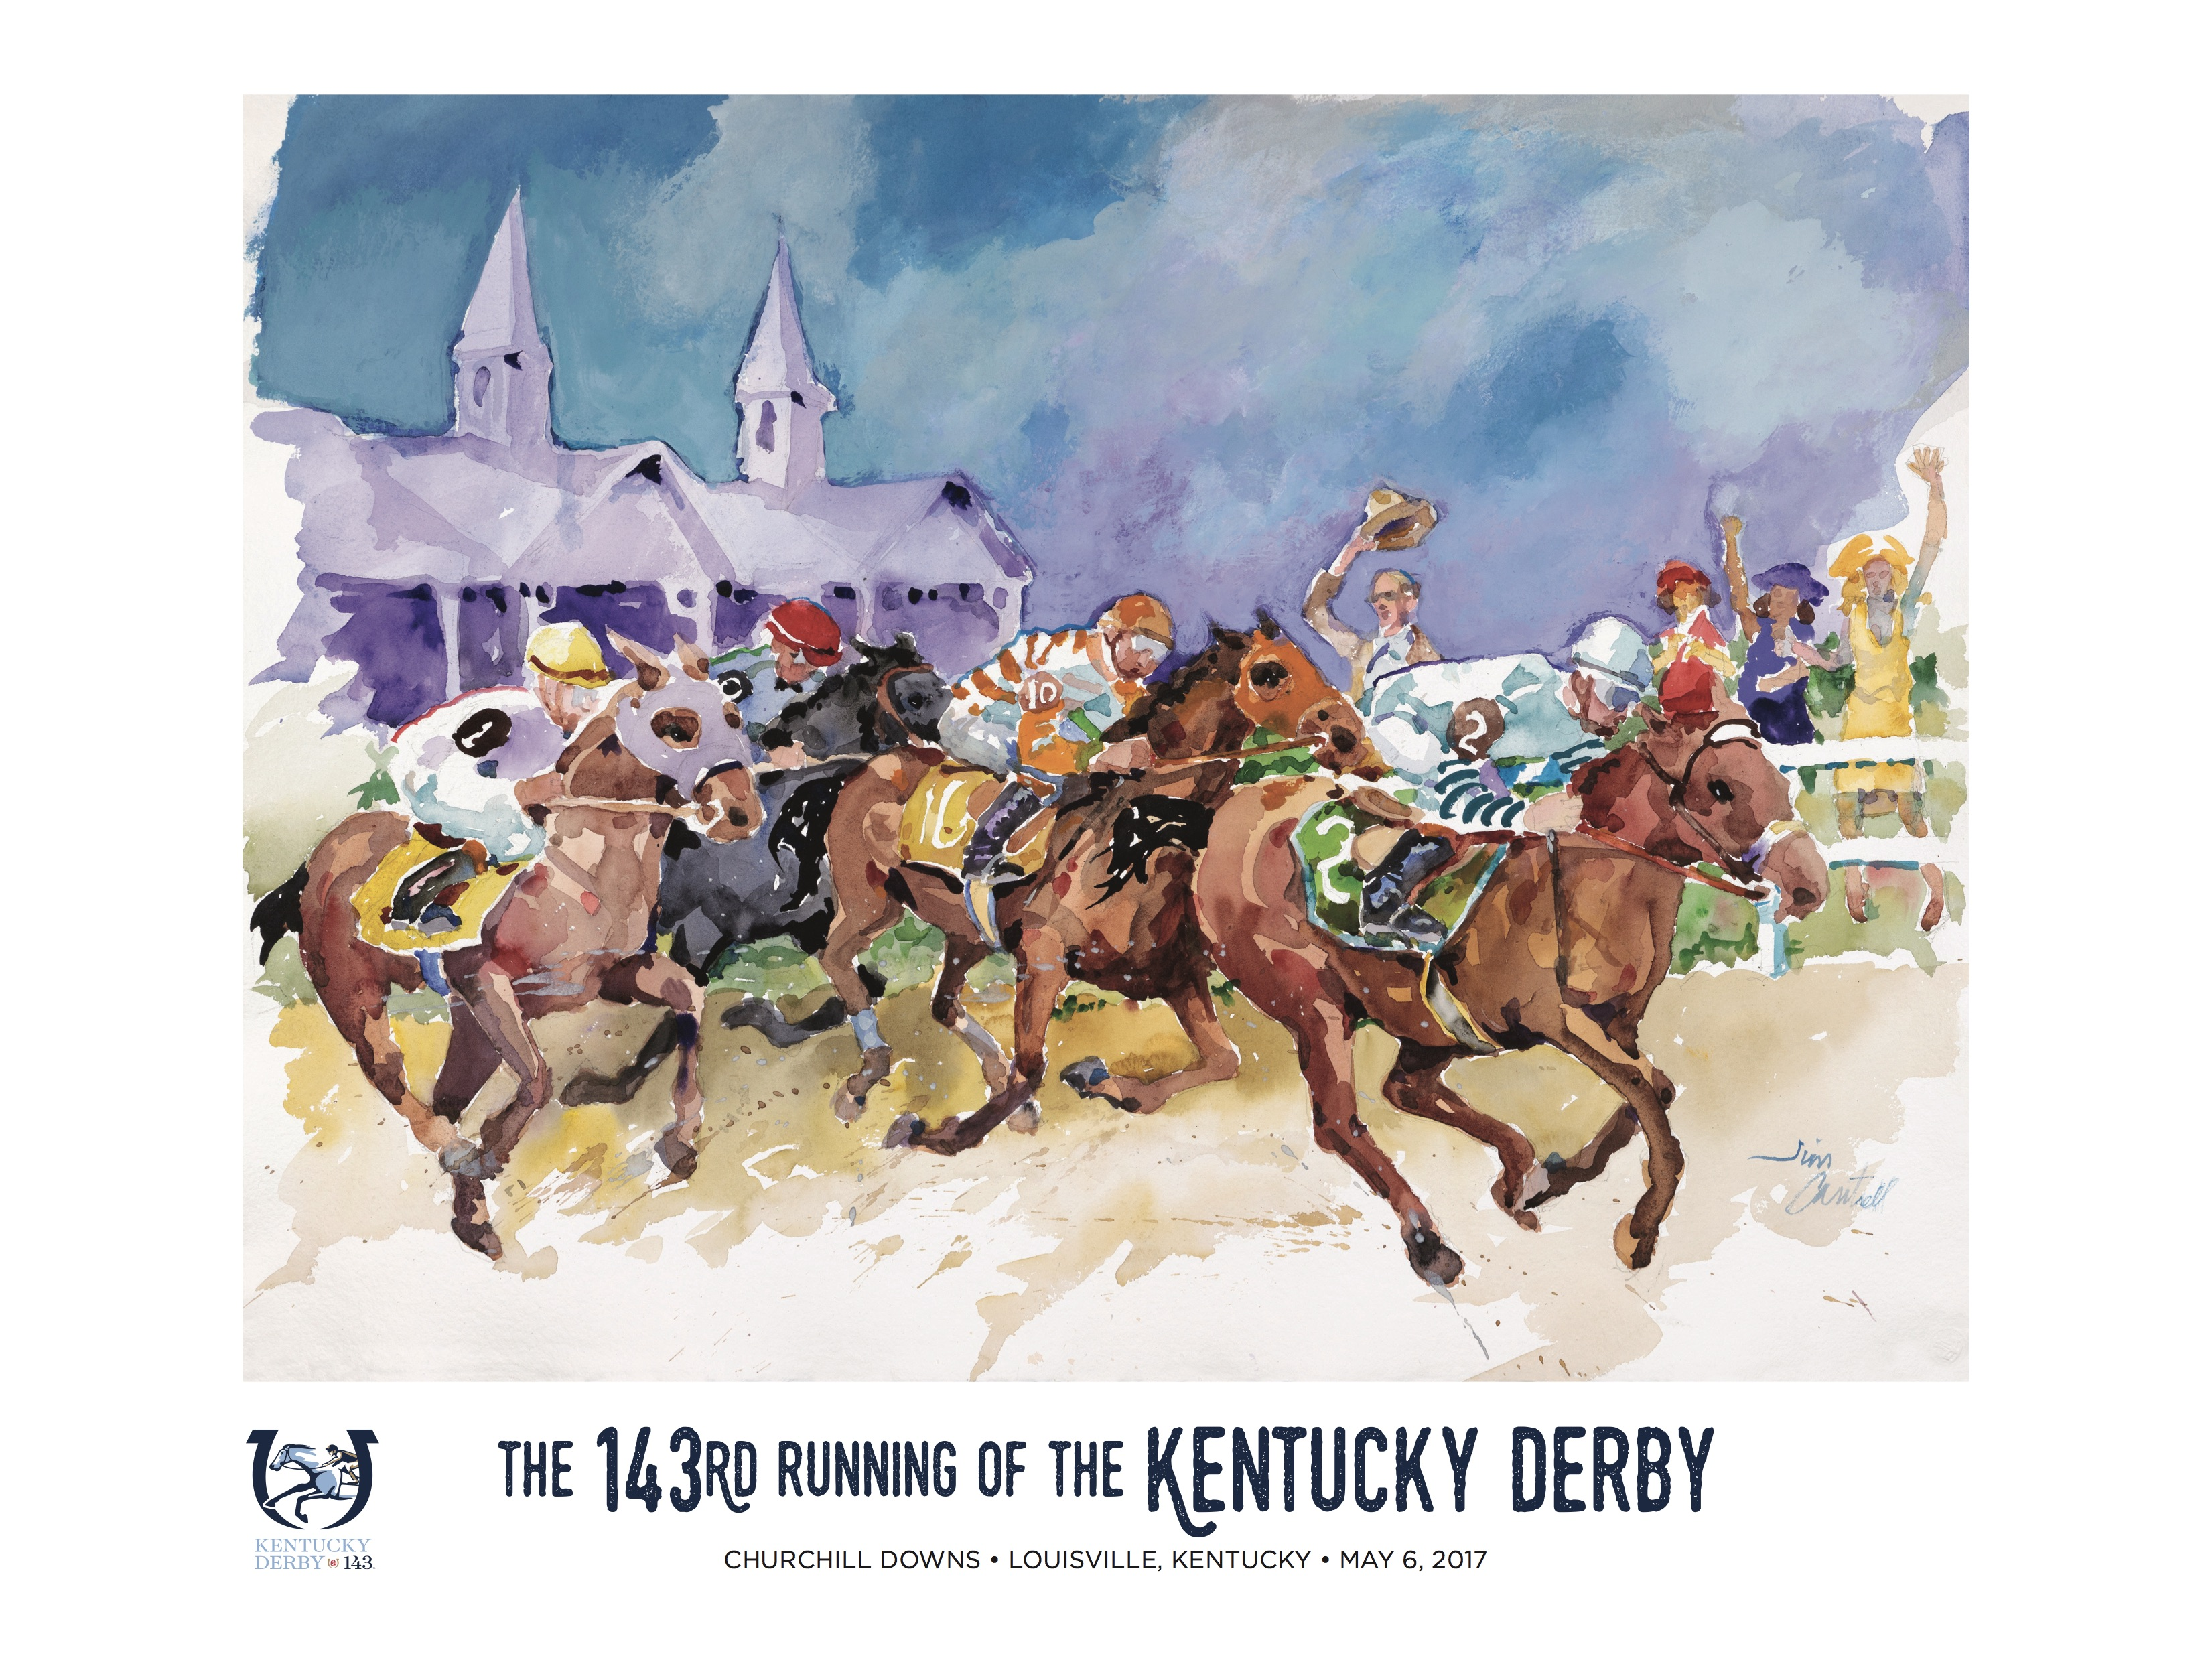 Jim Cantrell First KY Artist Selected To Create Official 'Art Of The Kentucky Derby'